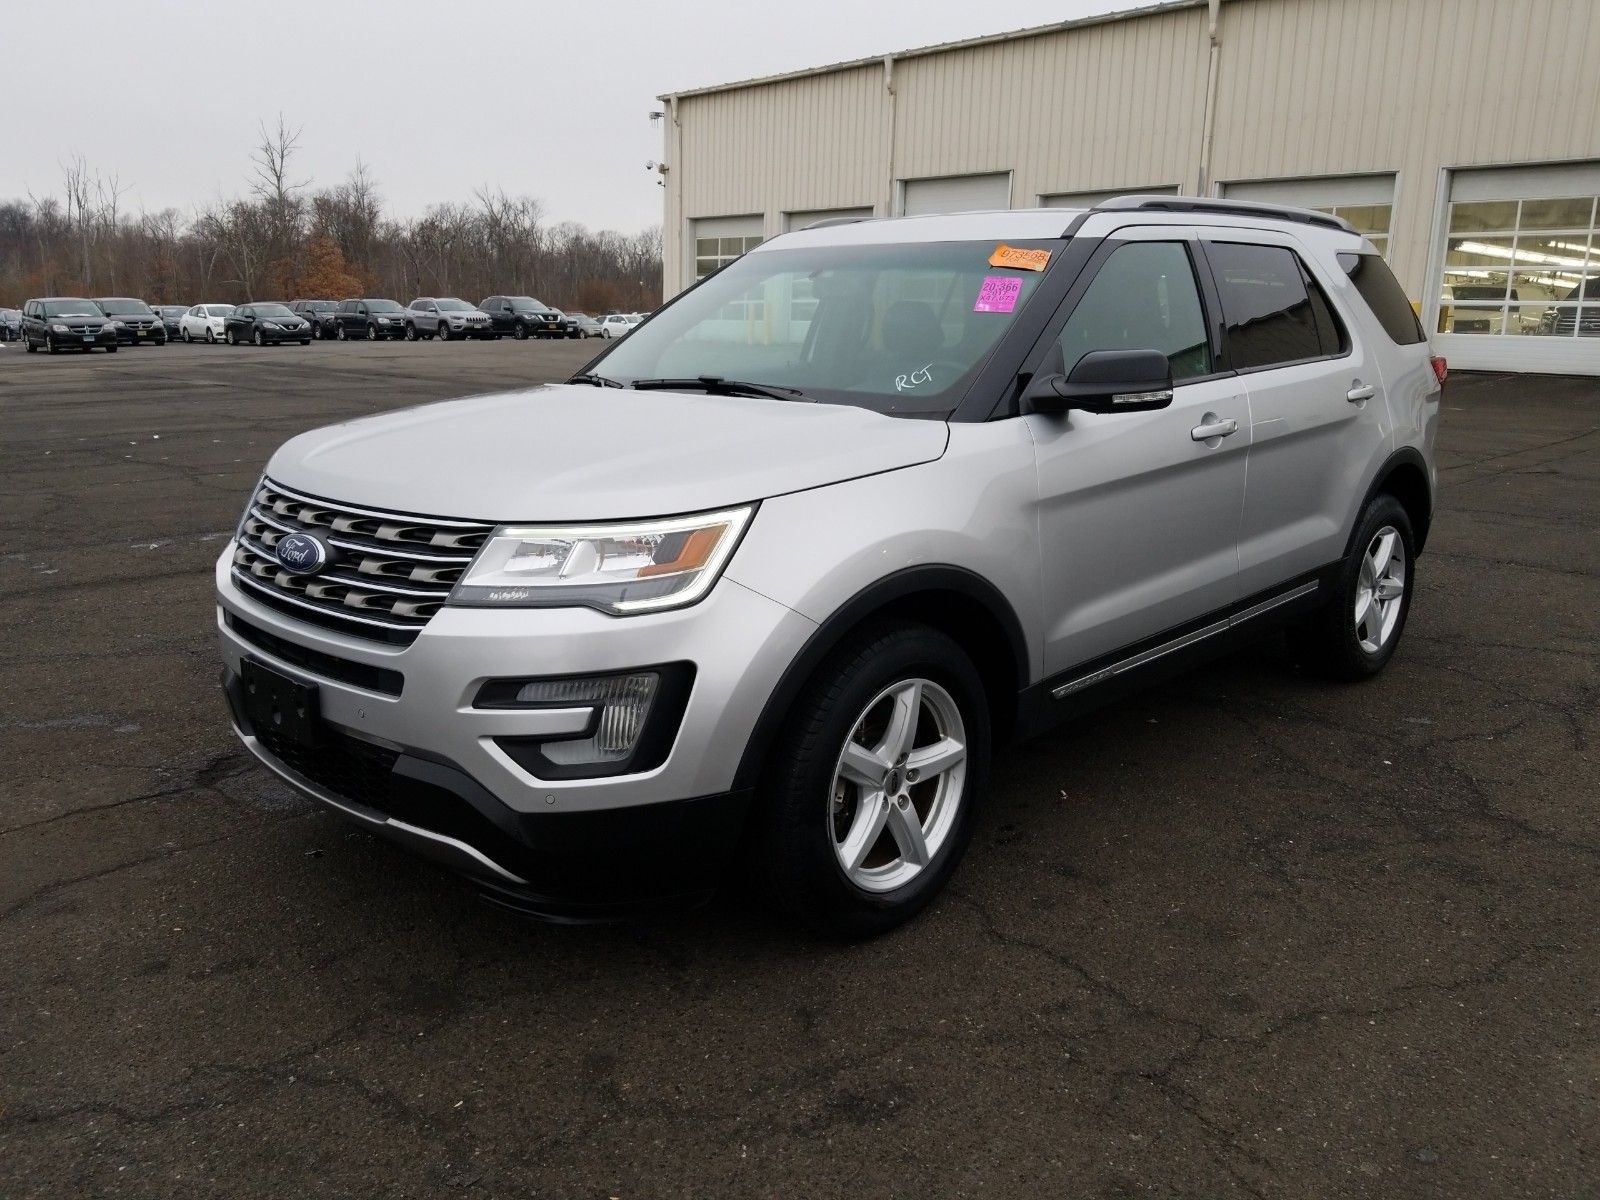 2017 Ford Explorer 3.5. Lot 99911935899 Vin 1FM5K8D83HGB75503